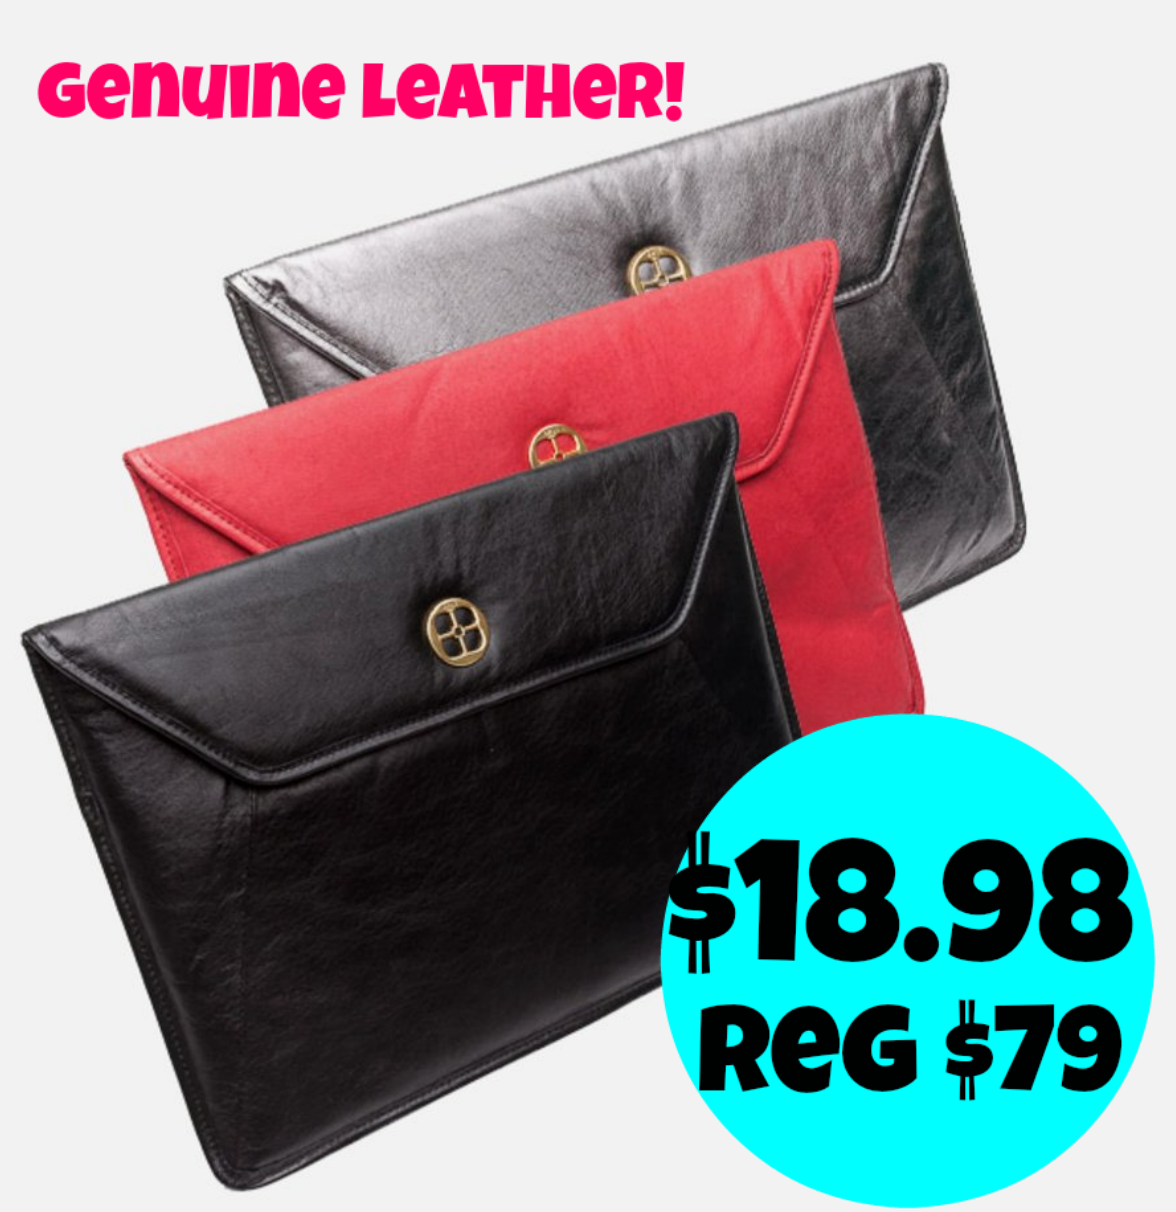 http://www.thebinderladies.com/2015/01/tanga-genuine-leather-13-laptoptablet.html